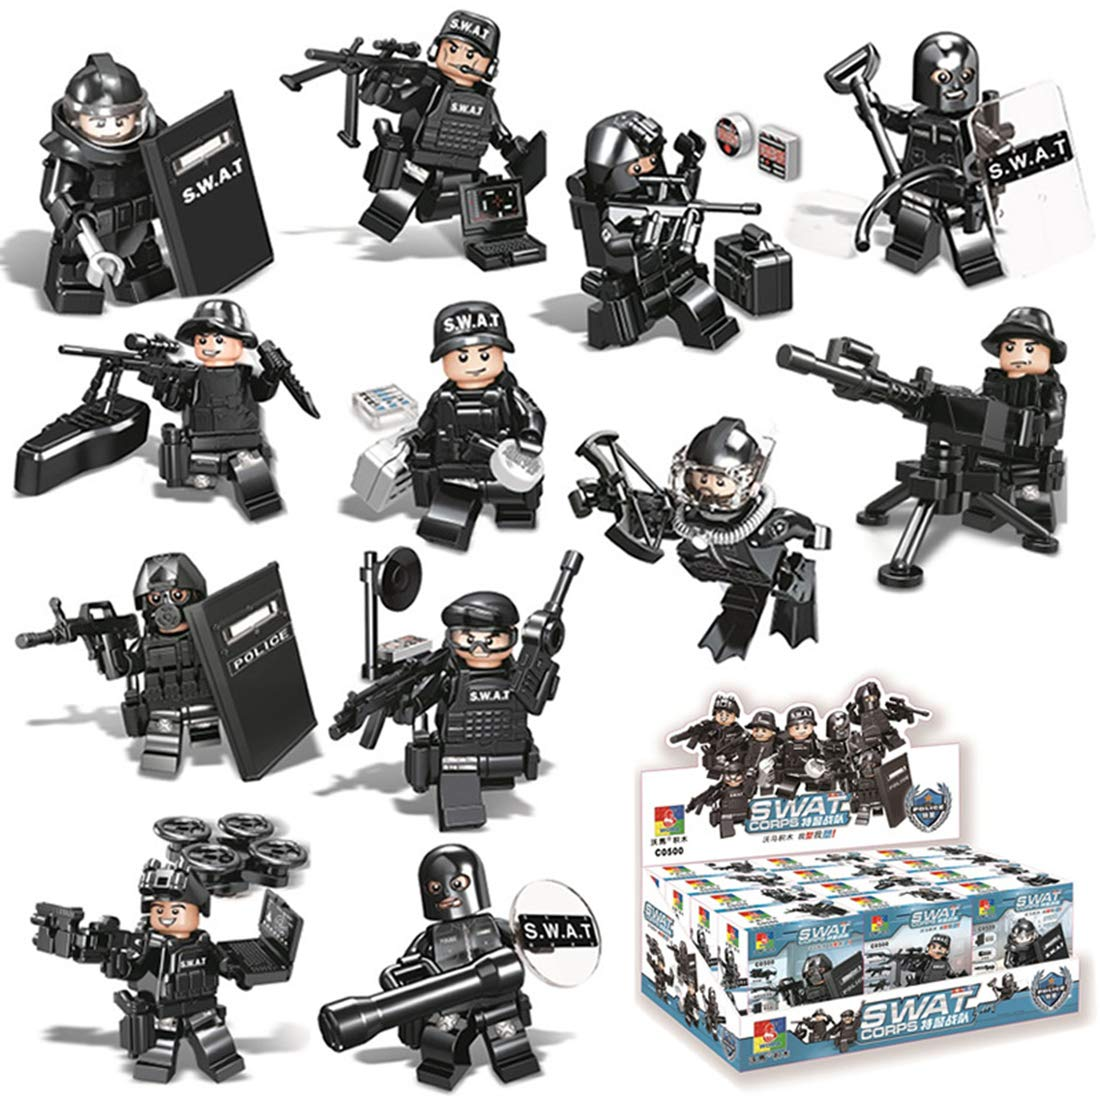 LoKauf 12St. Mini Figuren Set SWAT Team Armee Soldaten Minifiguren Set Adventskalender Inhalt fü r Kinder